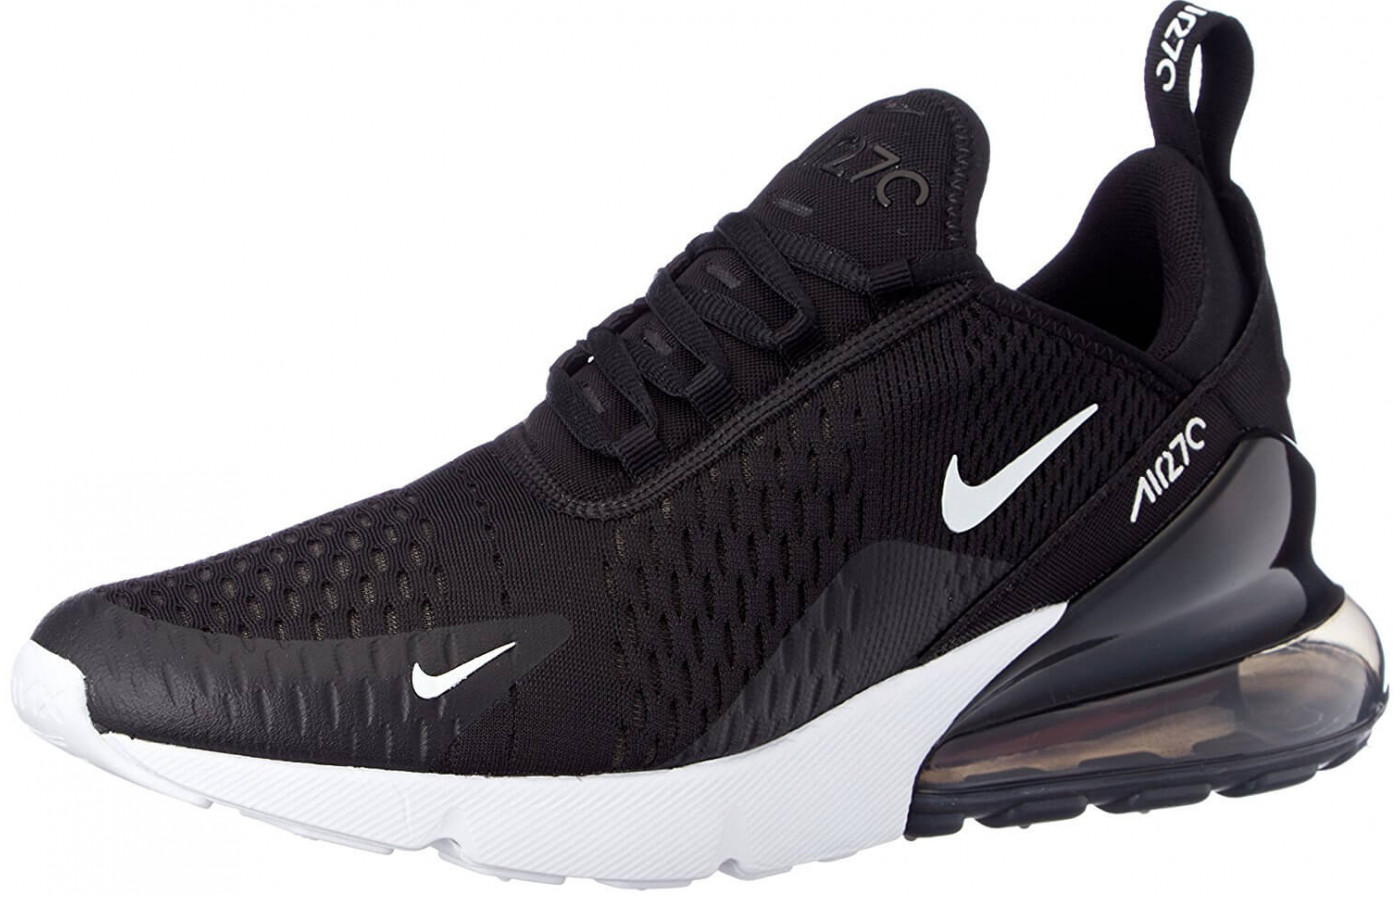 2be7da6f5fb Nike Air Max 270. Mesh upper and 270 degrees of Air ...